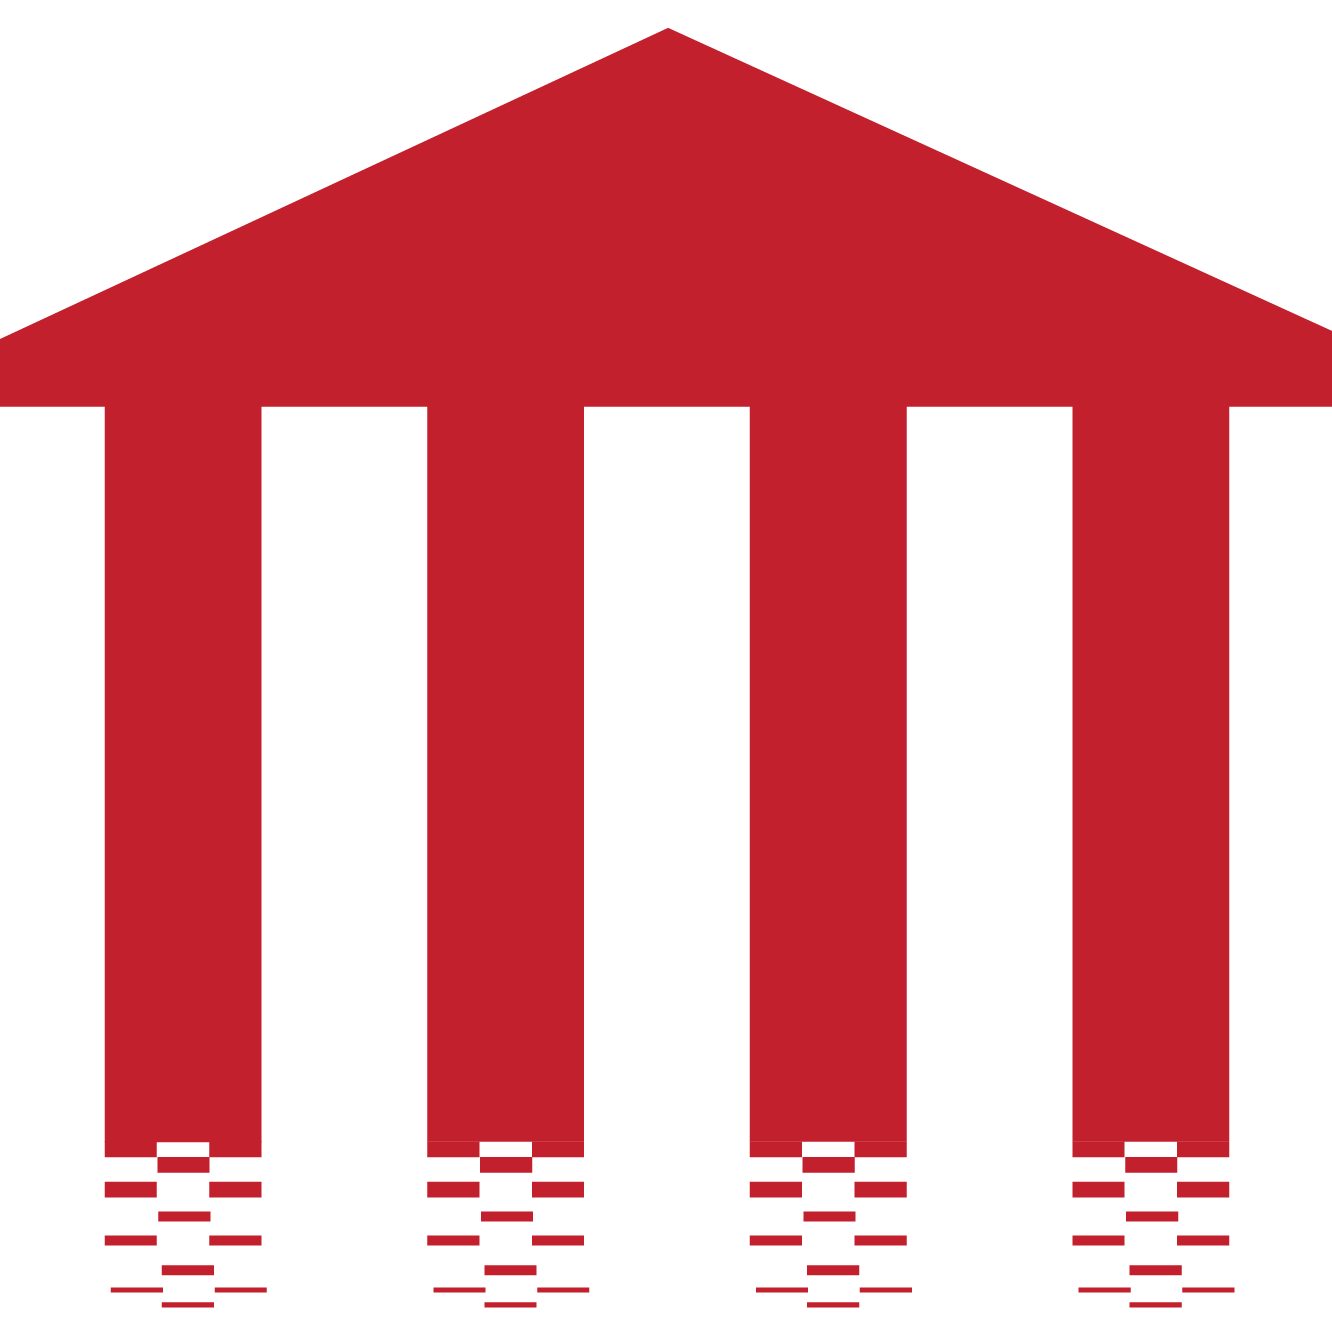 Red image of a building resembling one of ancient greece